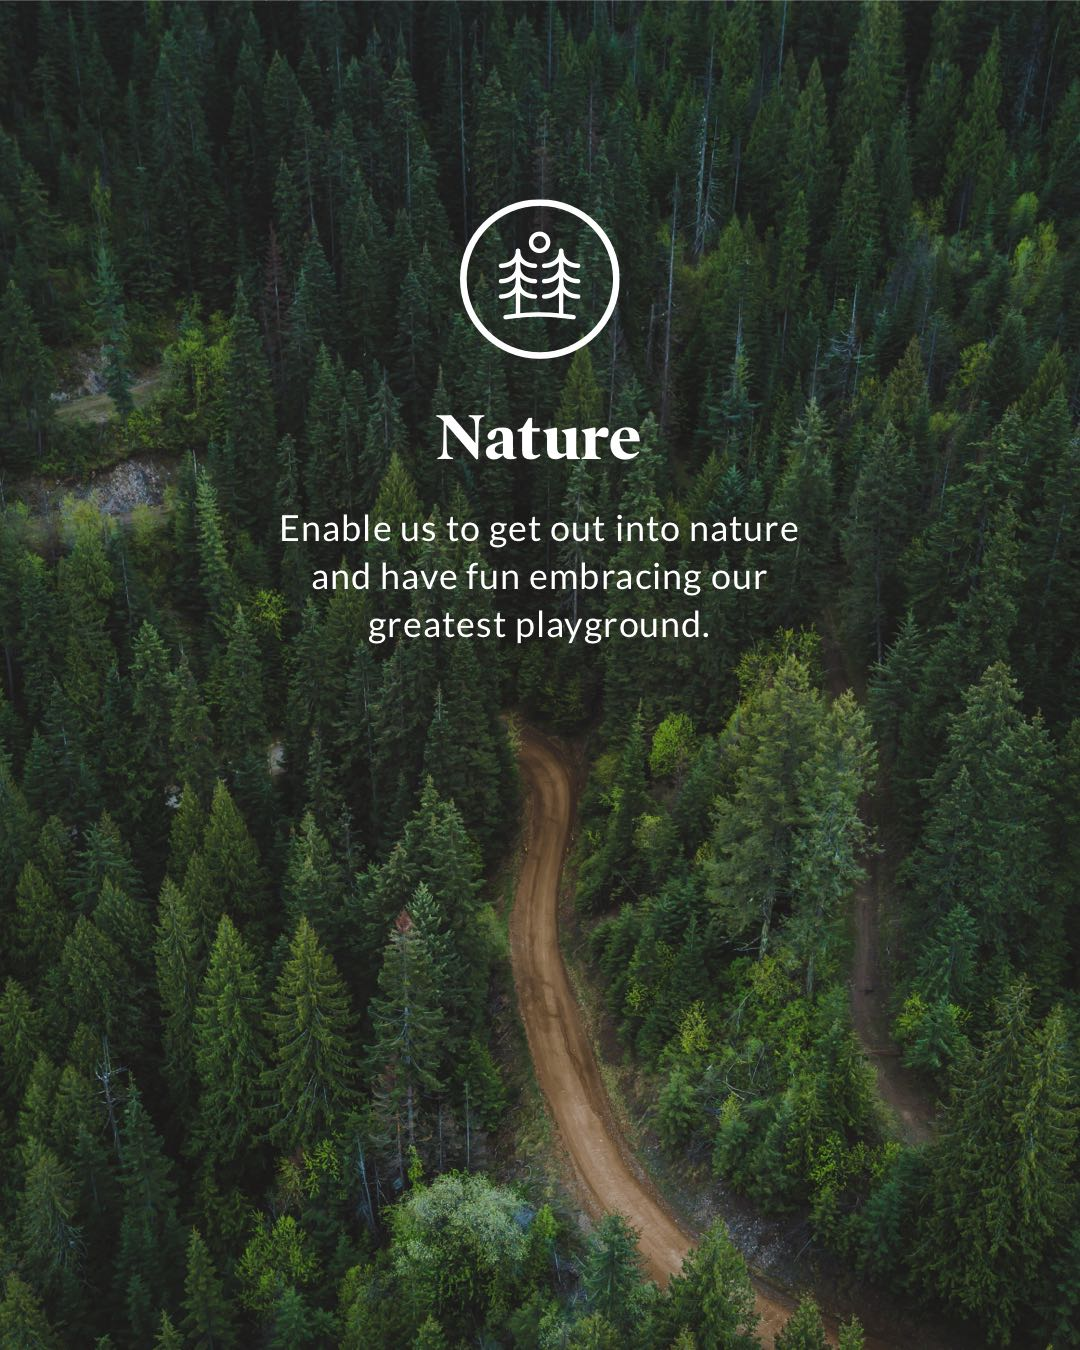 nature - Enable us to get out into nature and have fun embracing our greatest playground.